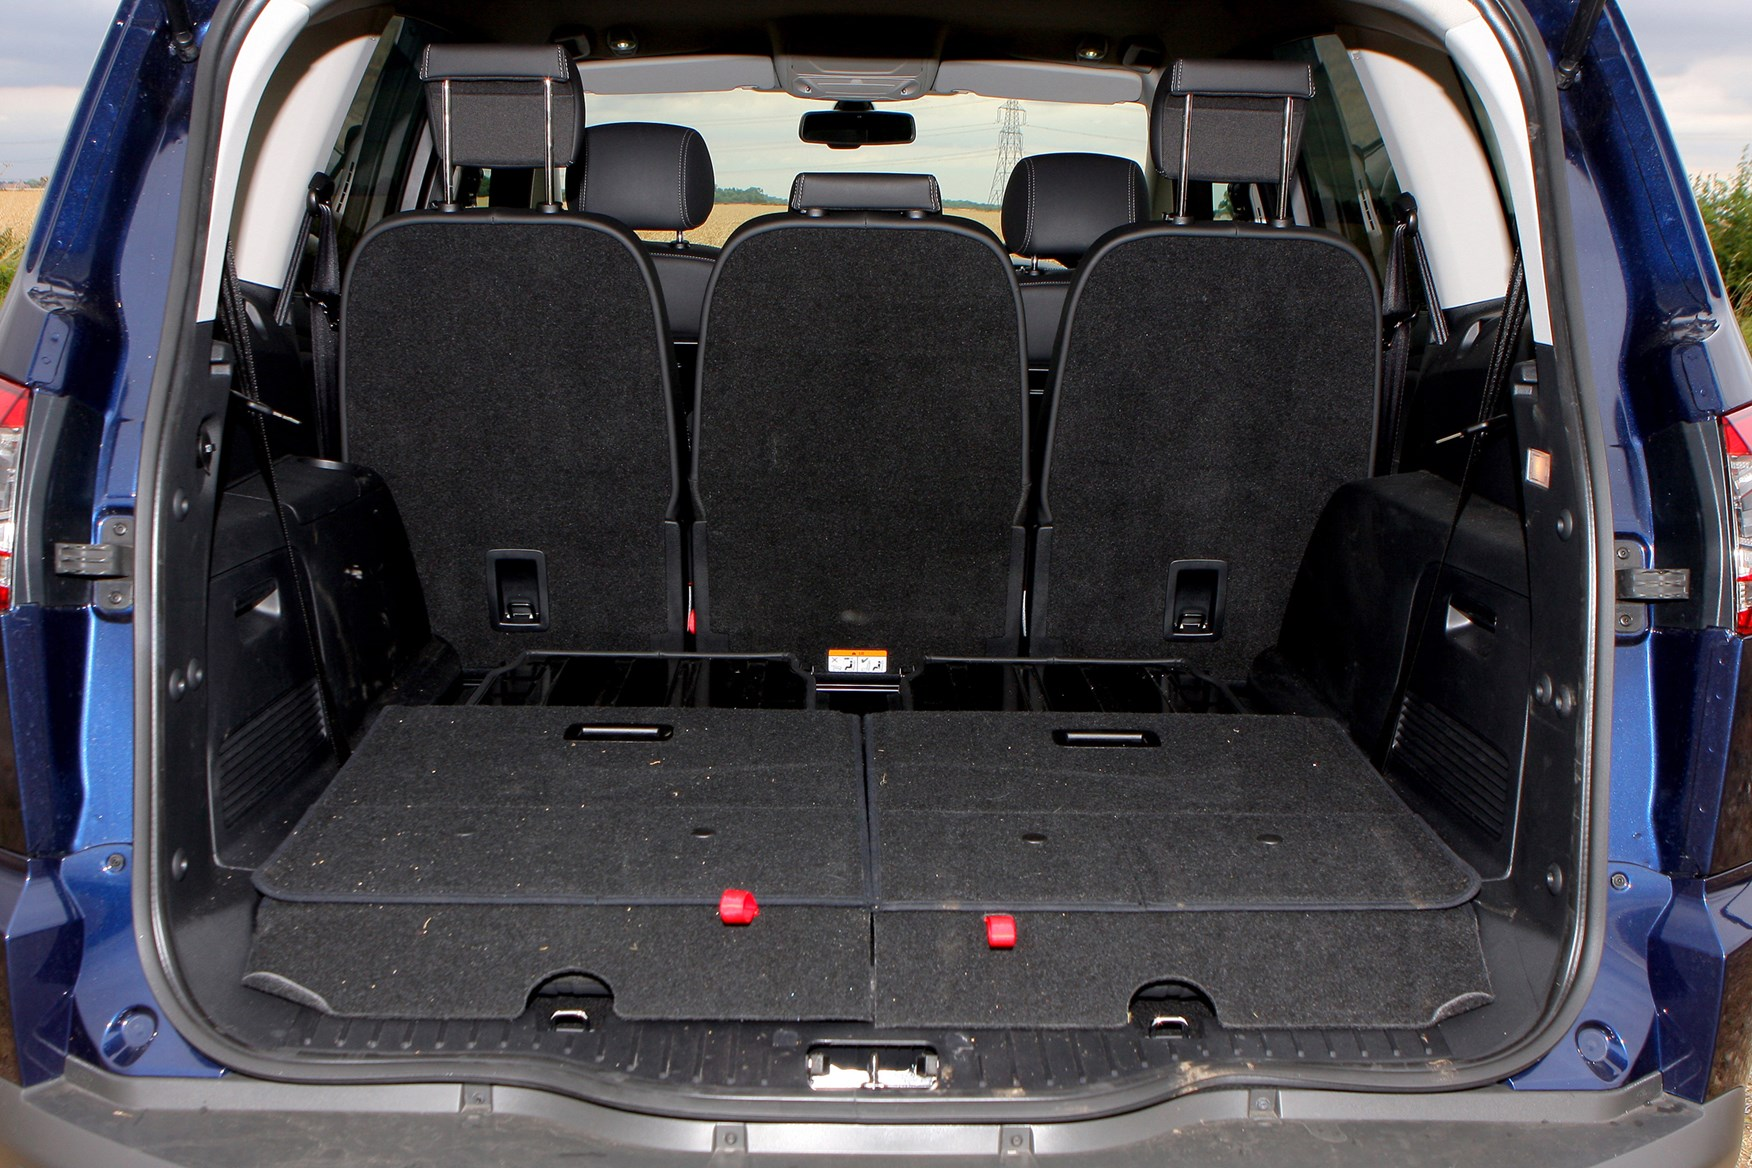 Ford S-MAX Estate (2006 - 2014) Features, Equipment and Accessories ...